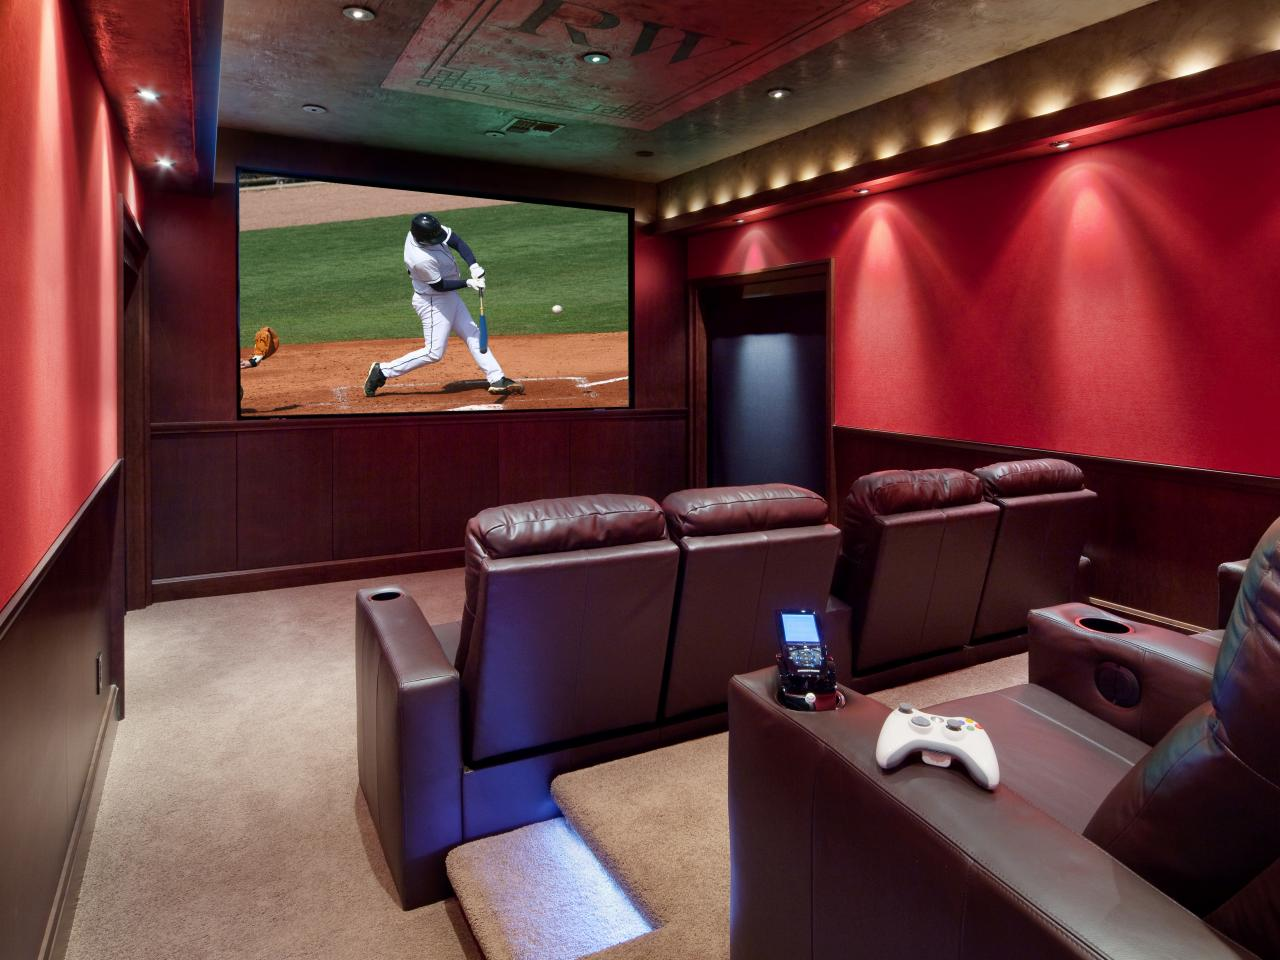 Home theater design ideas pictures tips options hgtv Interior design ideas home theater